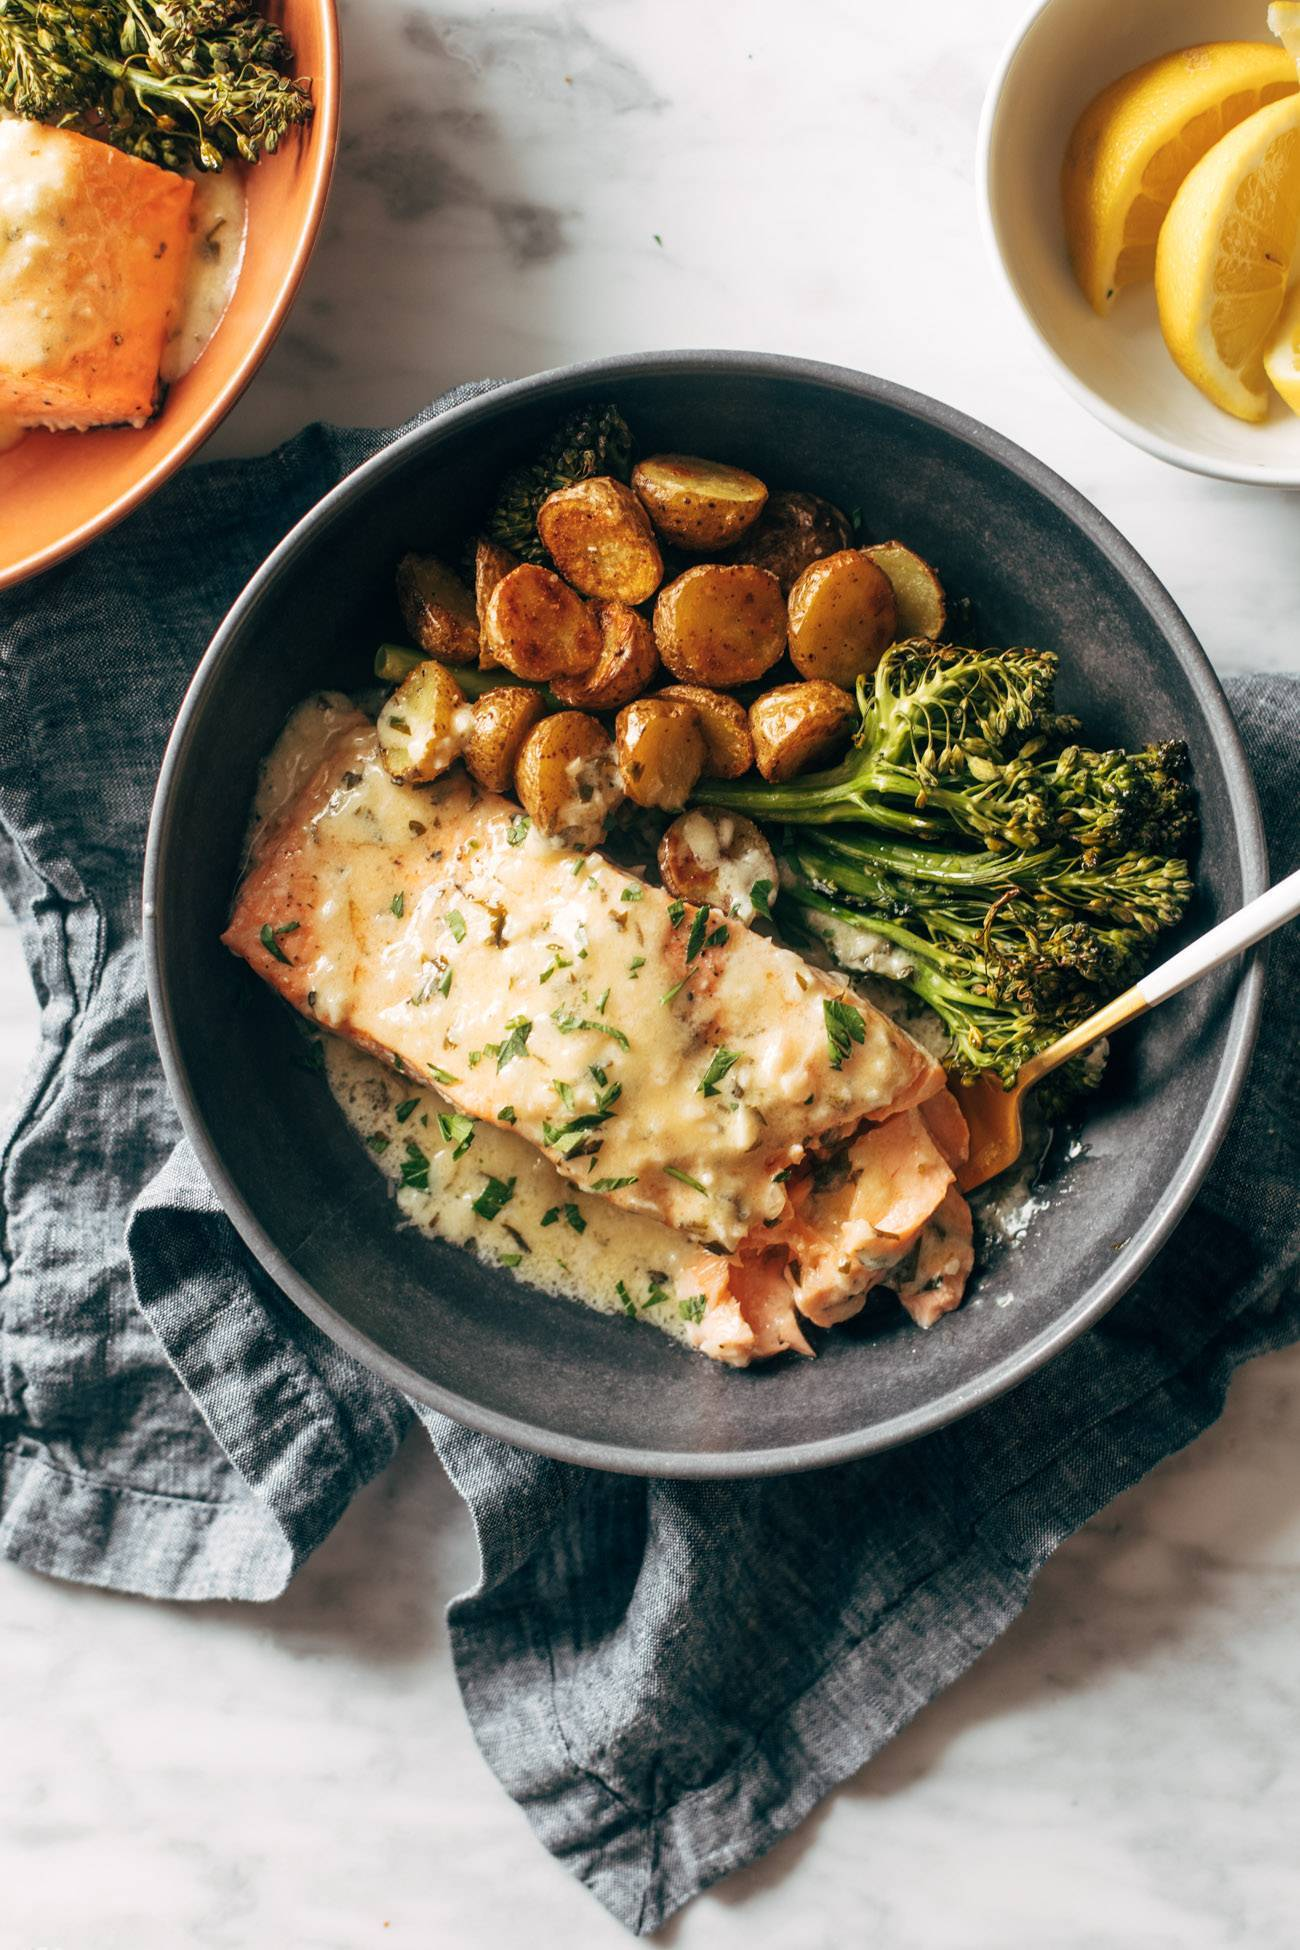 Food Find: Baked Salmon with Lemon Sauce